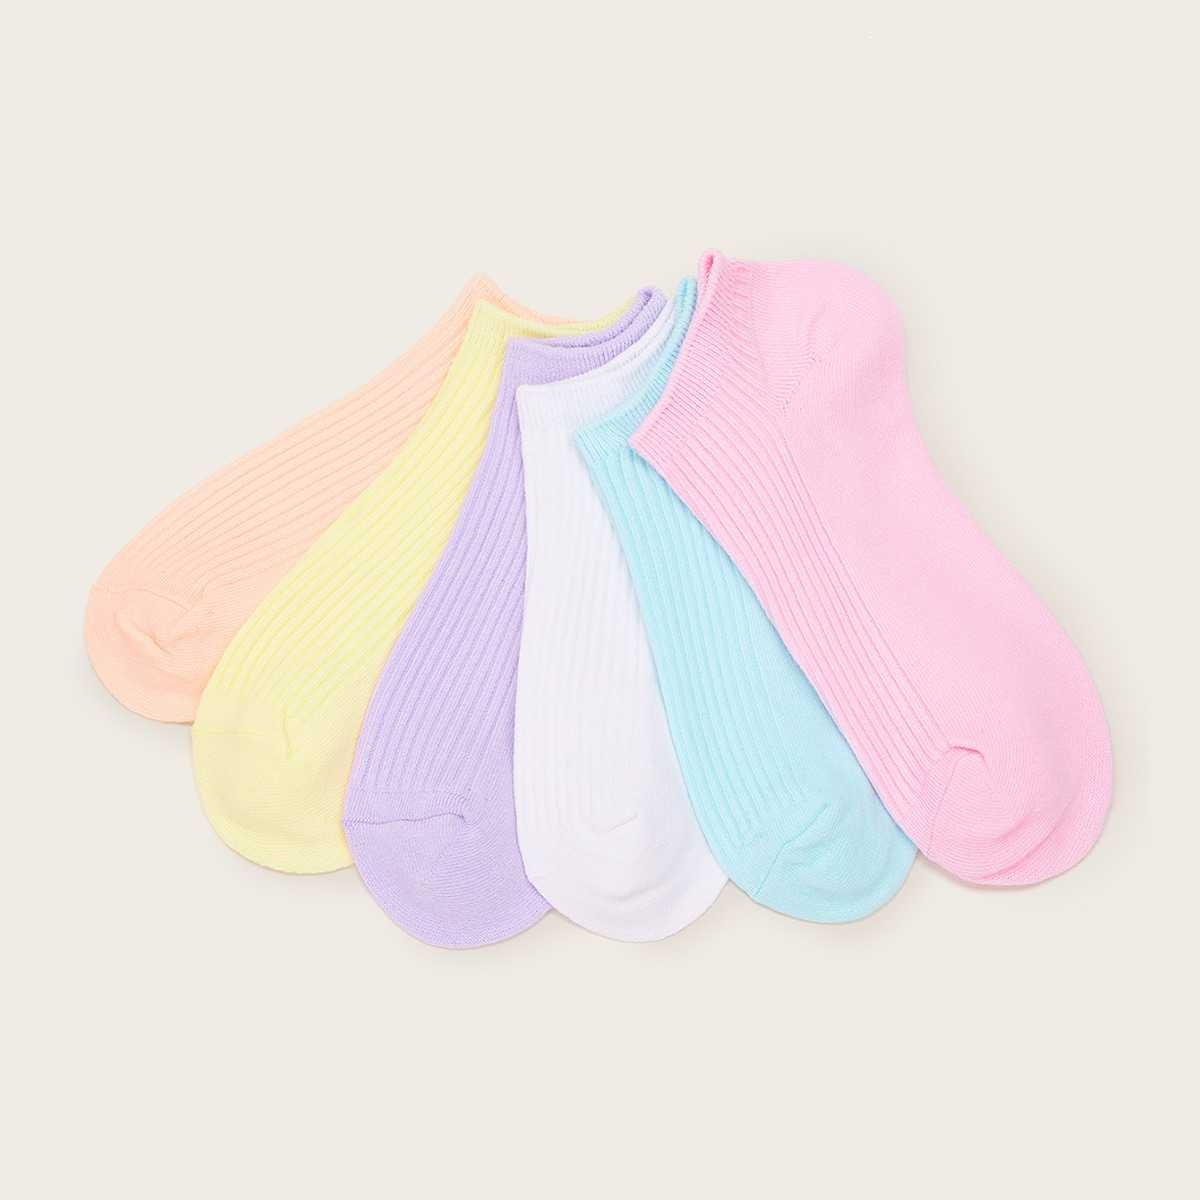 Simple Ankle Socks 6pairs in Multicolor by ROMWE on GOOFASH